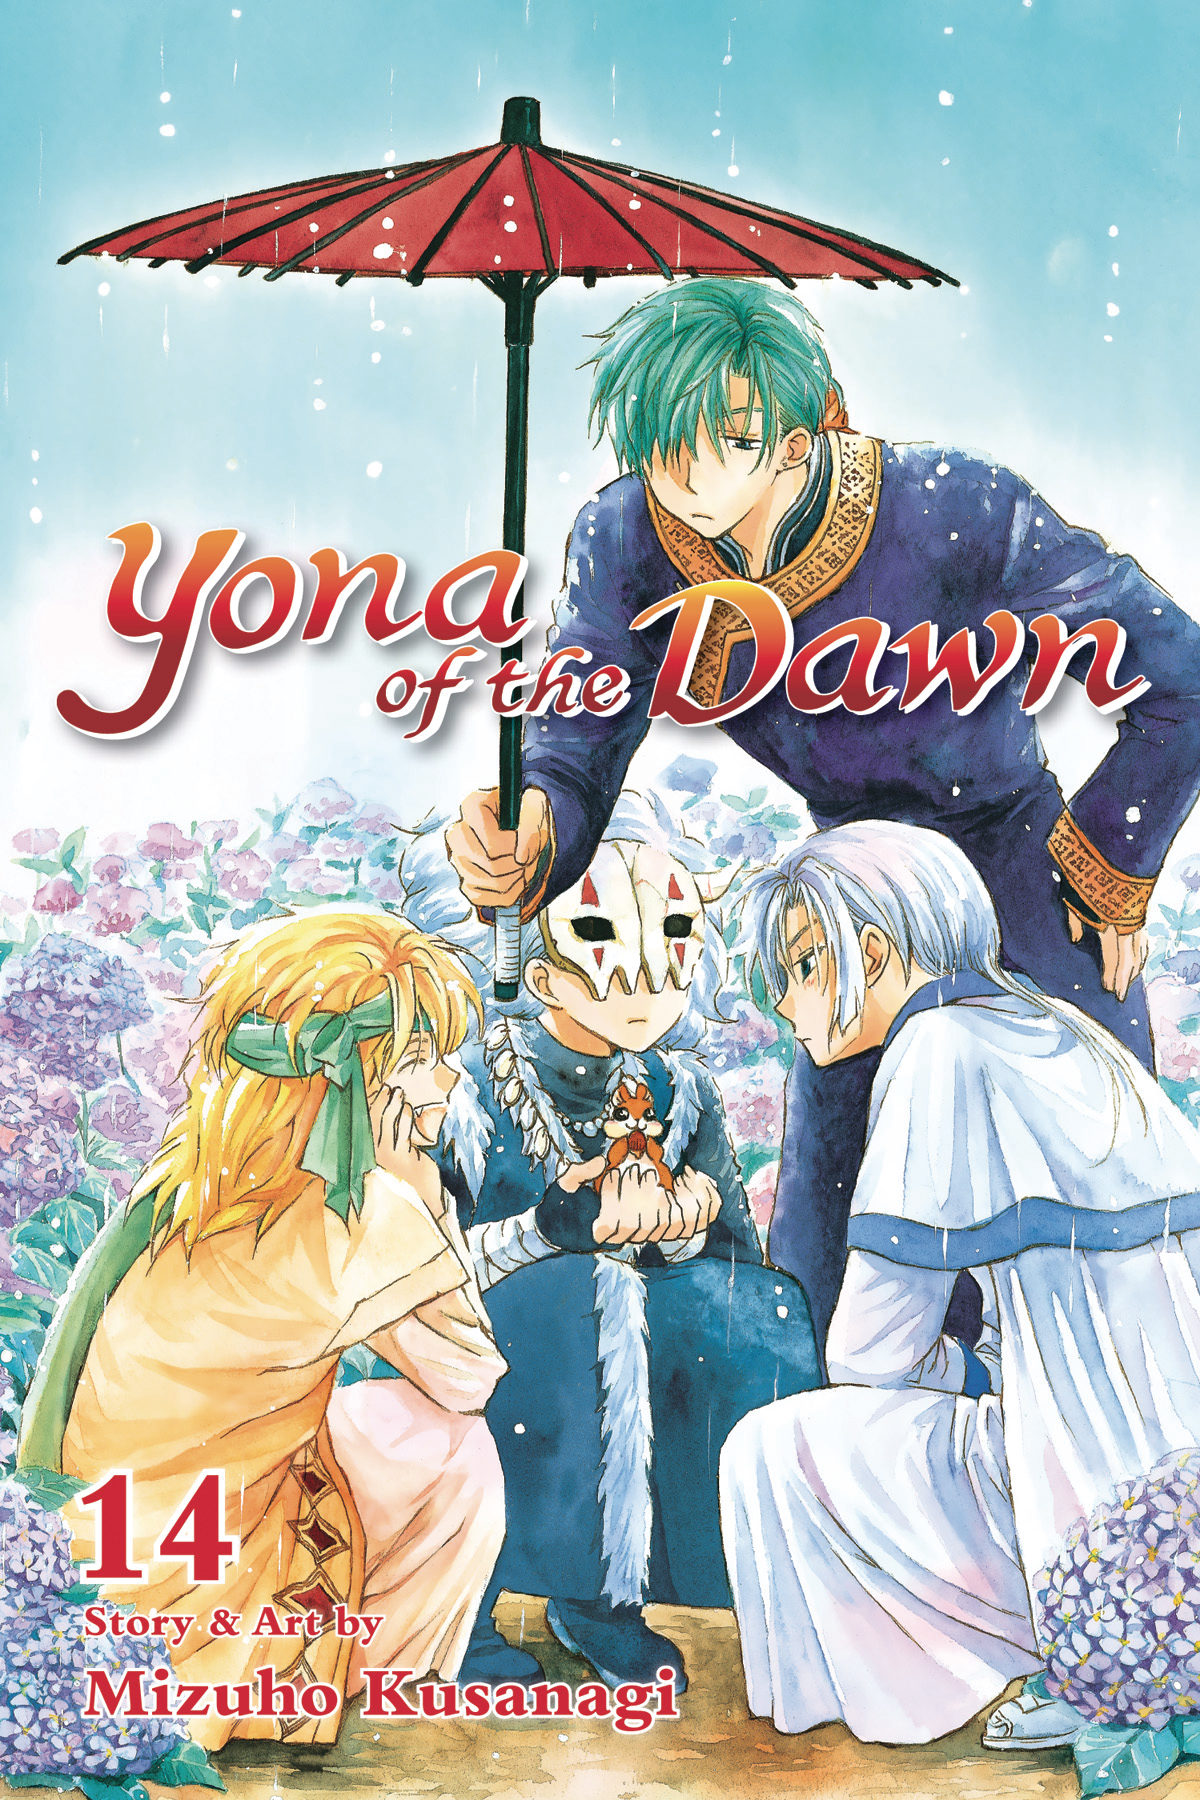 YONA OF THE DAWN GN VOL 14